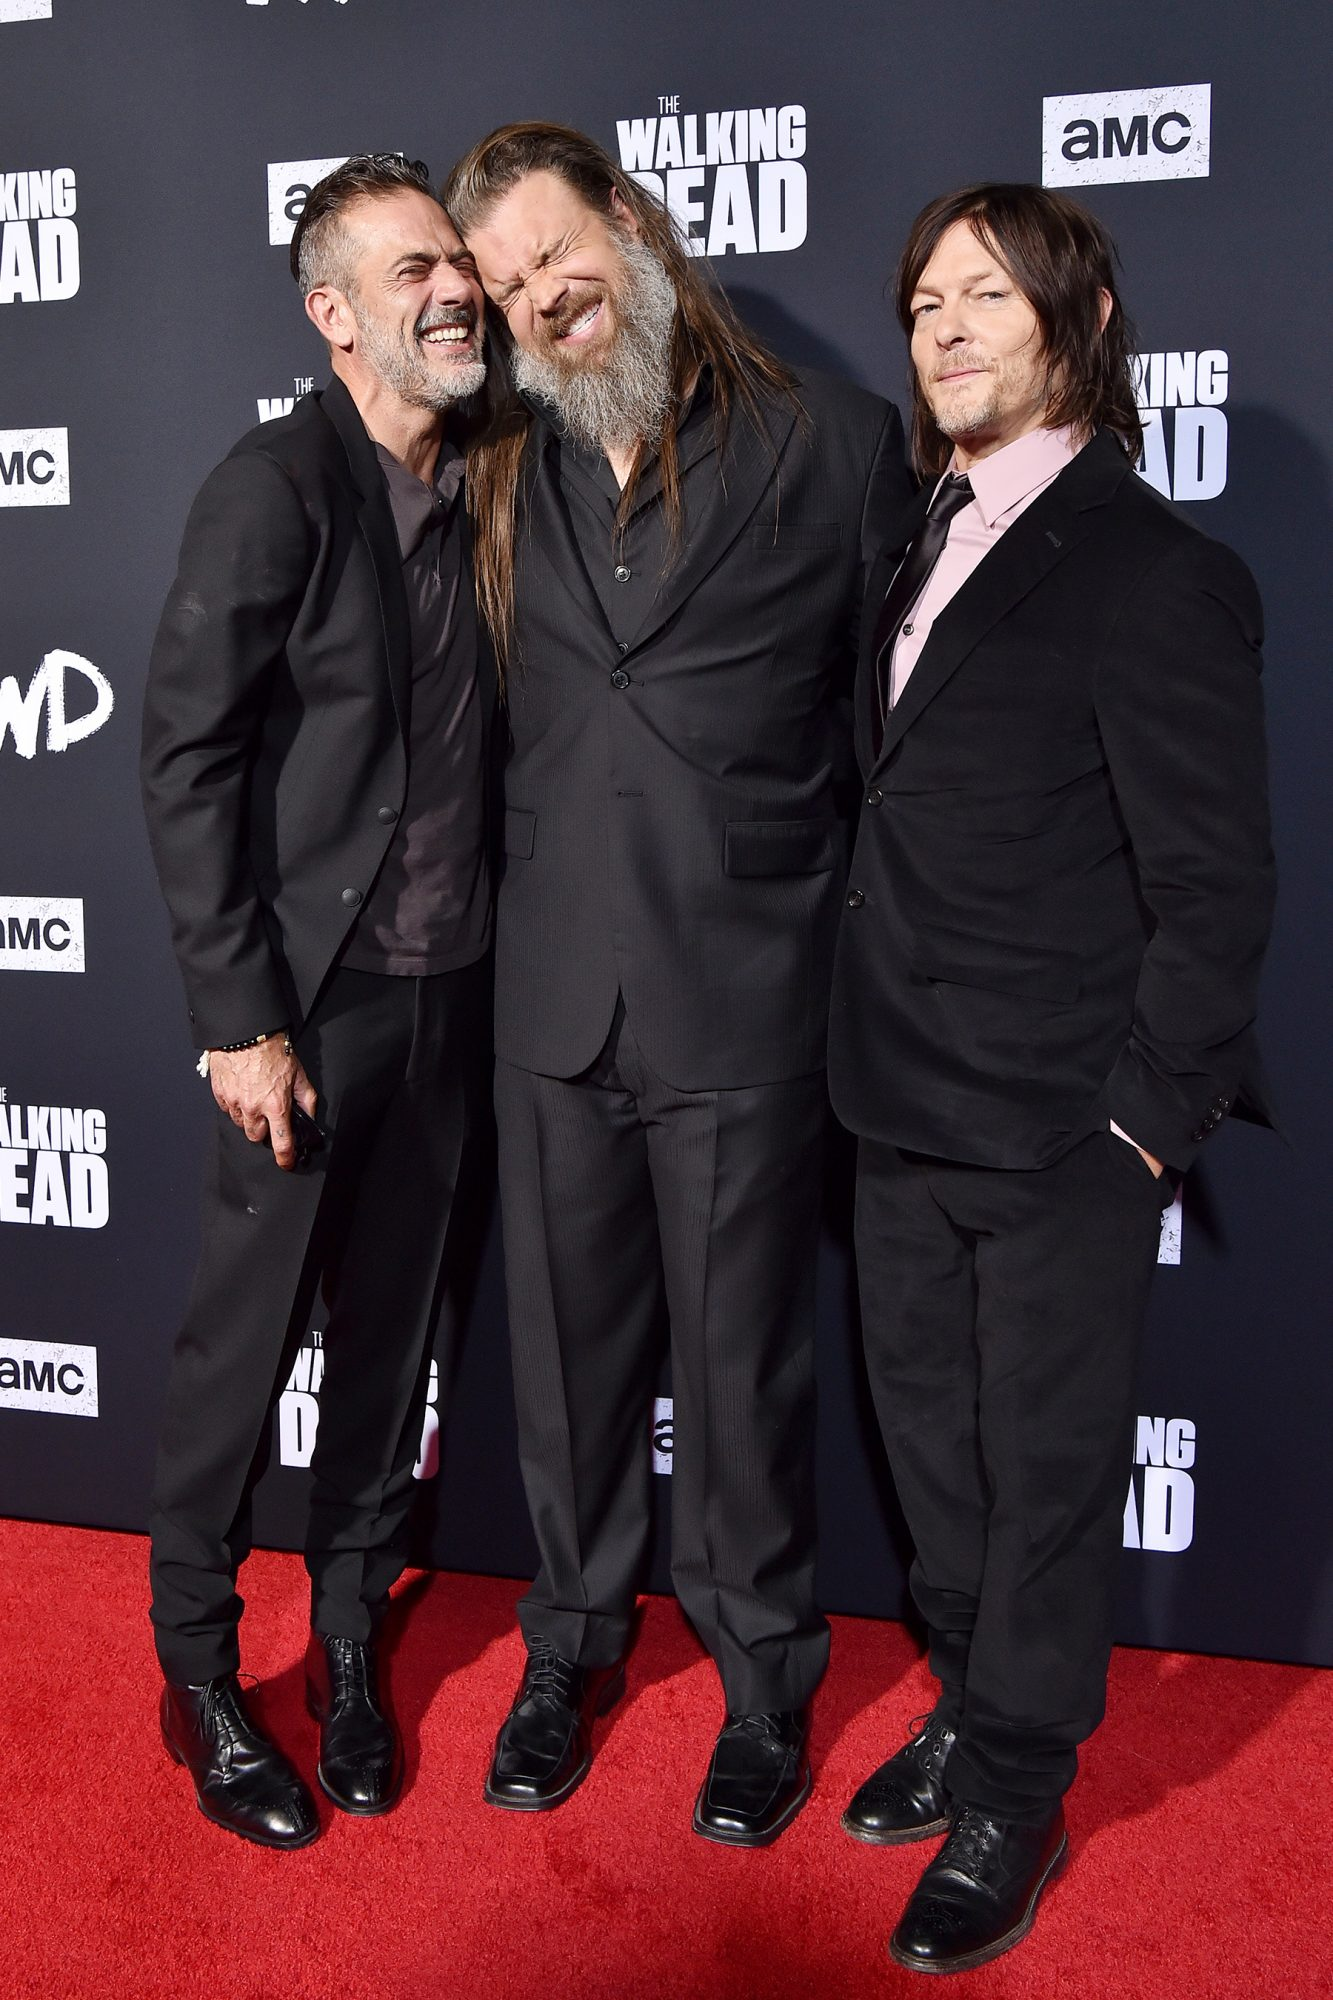 Jeffrey Dean Morgan, Ryan Hurst and Norman Reedus